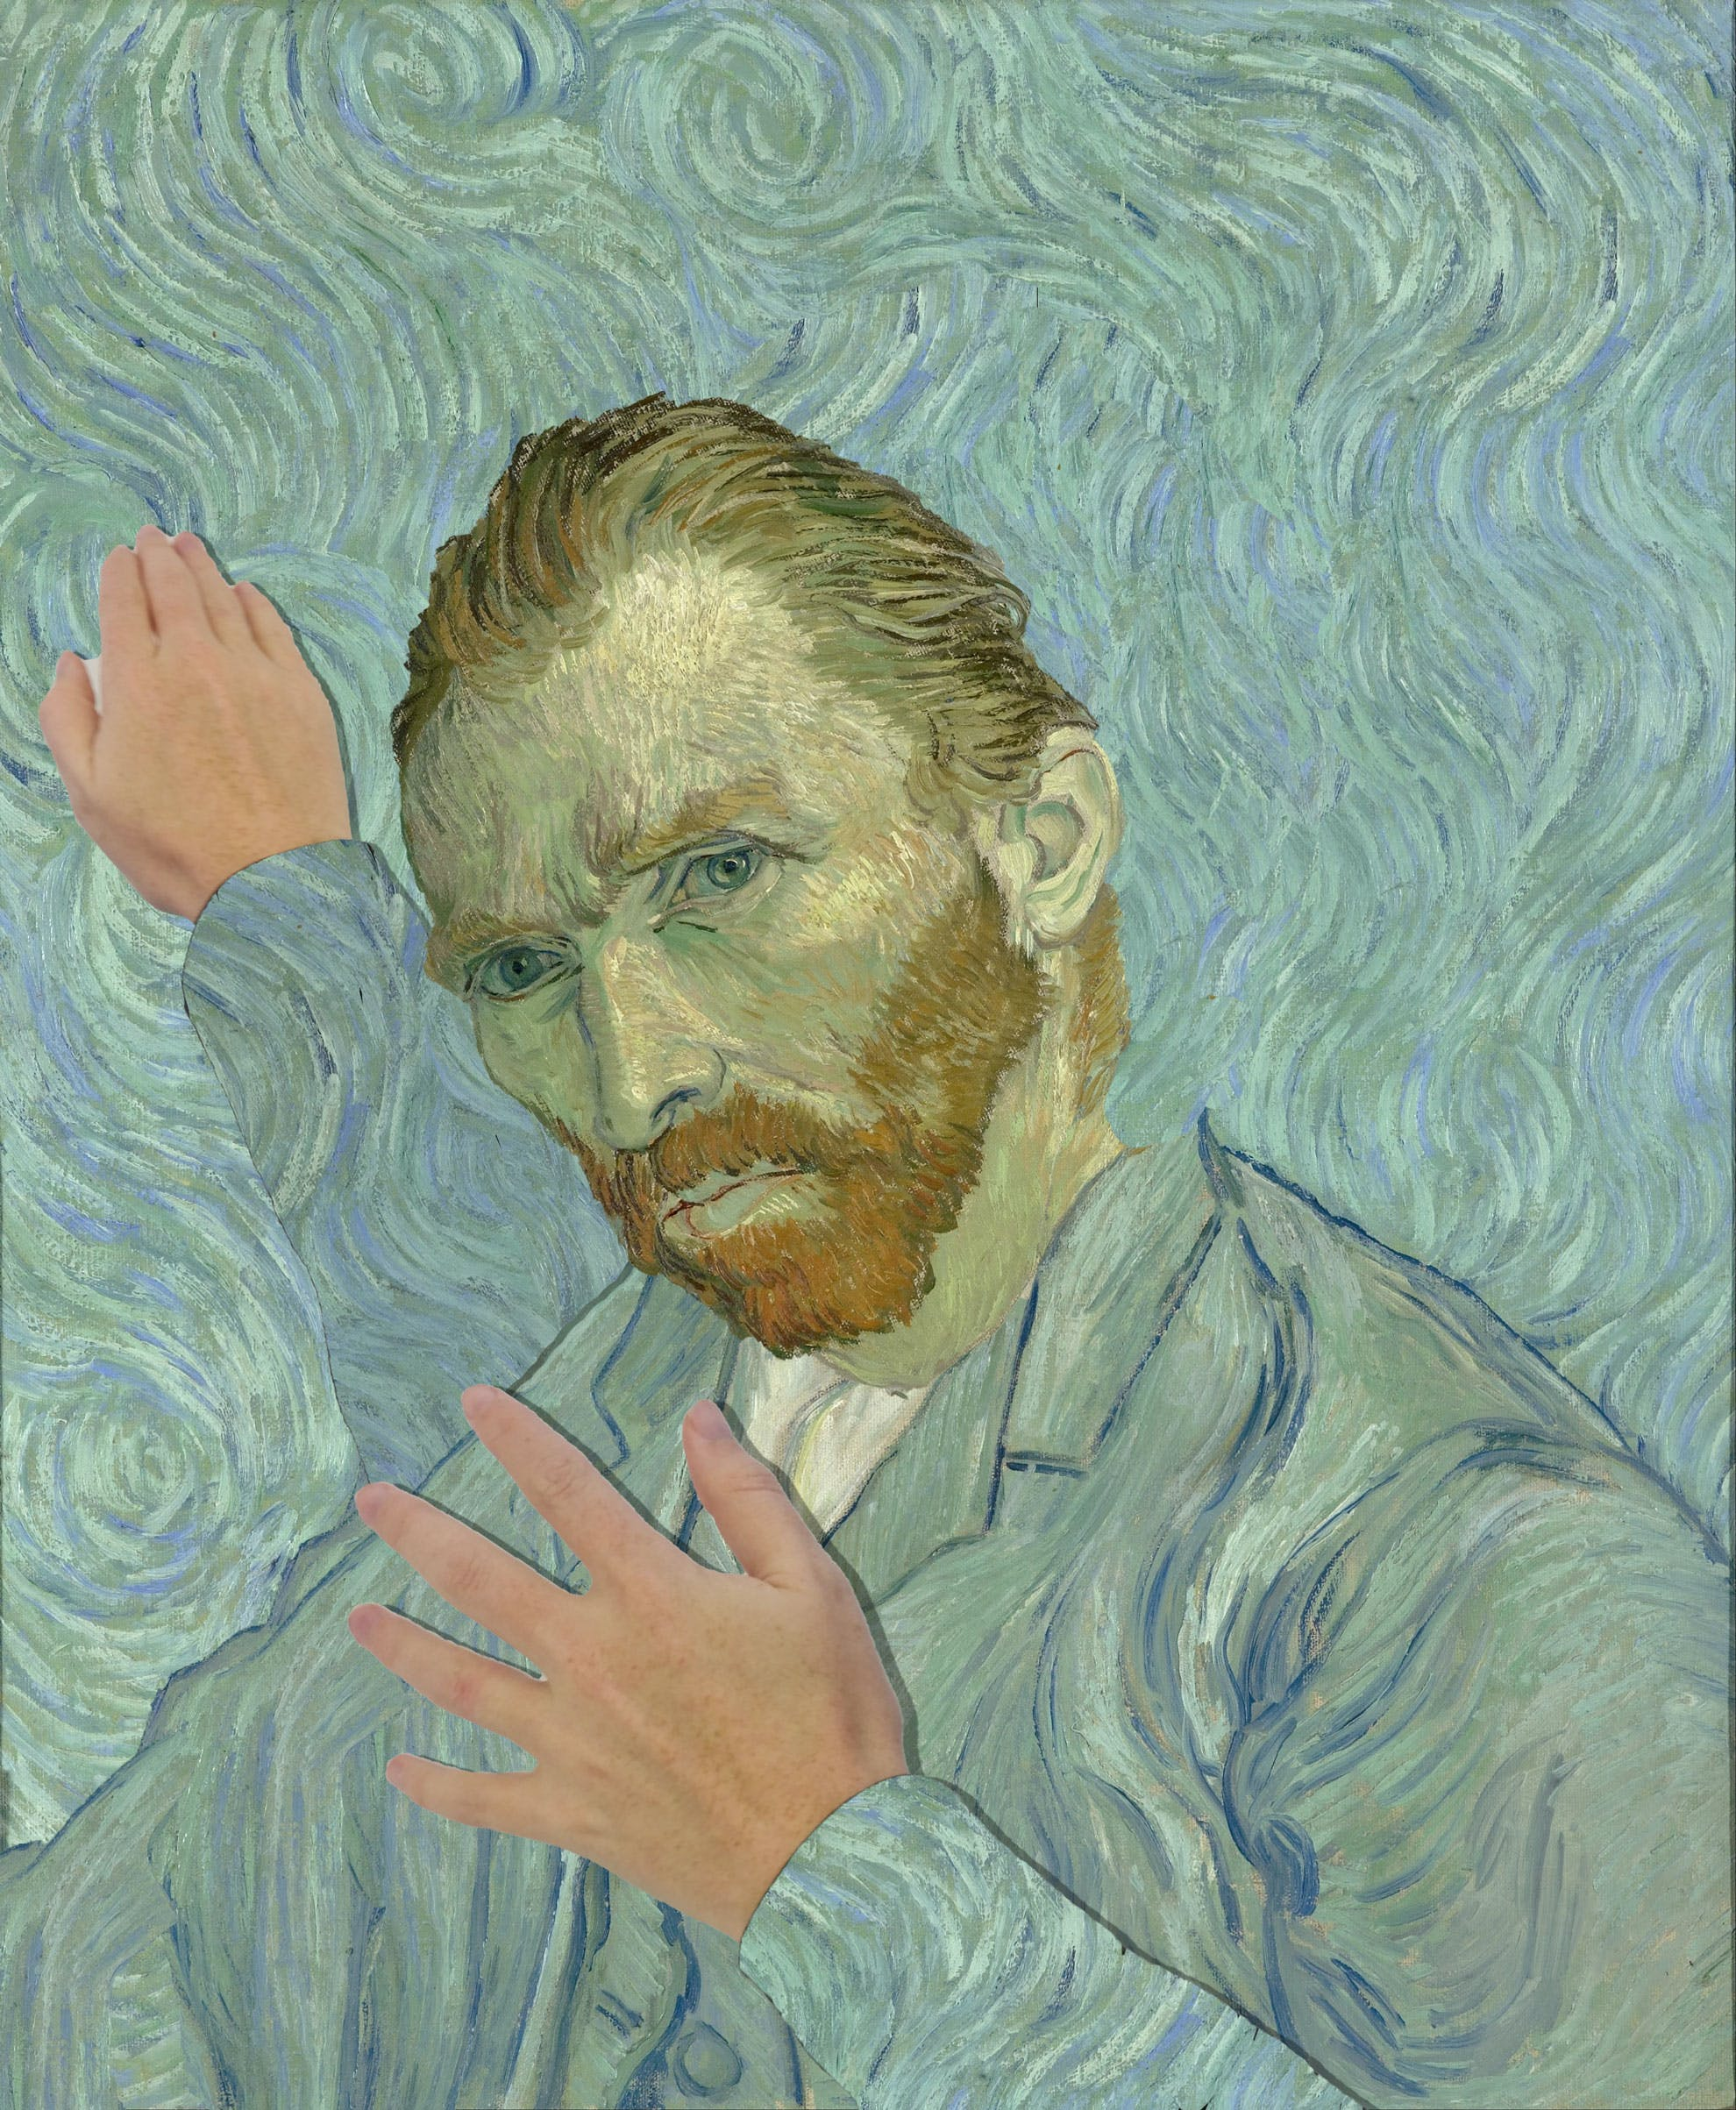 Van Gogh's self-portrait, with dabbing